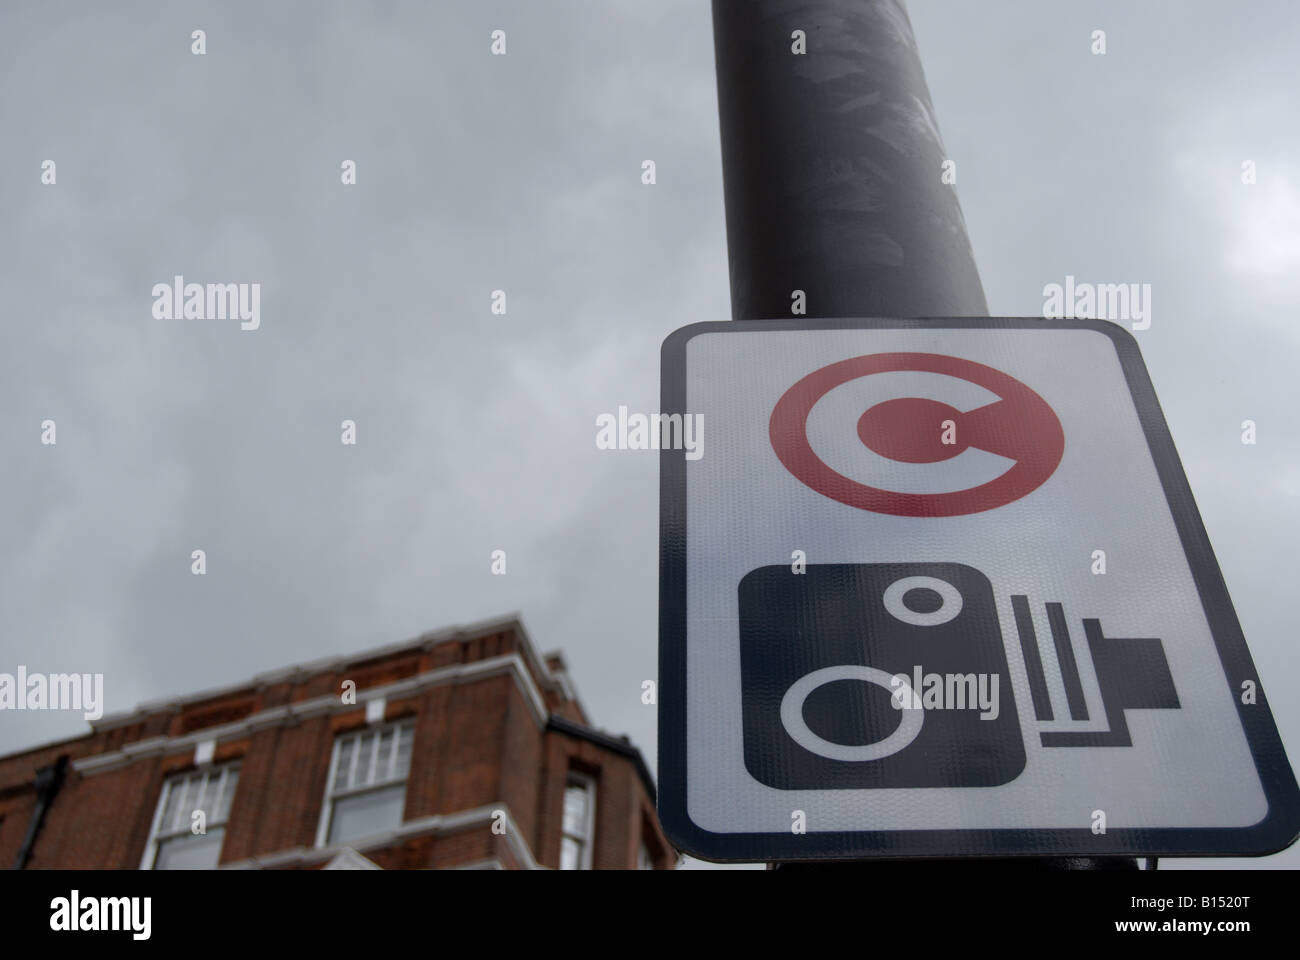 sign for london congestion charge with warning of camera , in chelsea, west london, england - Stock Image